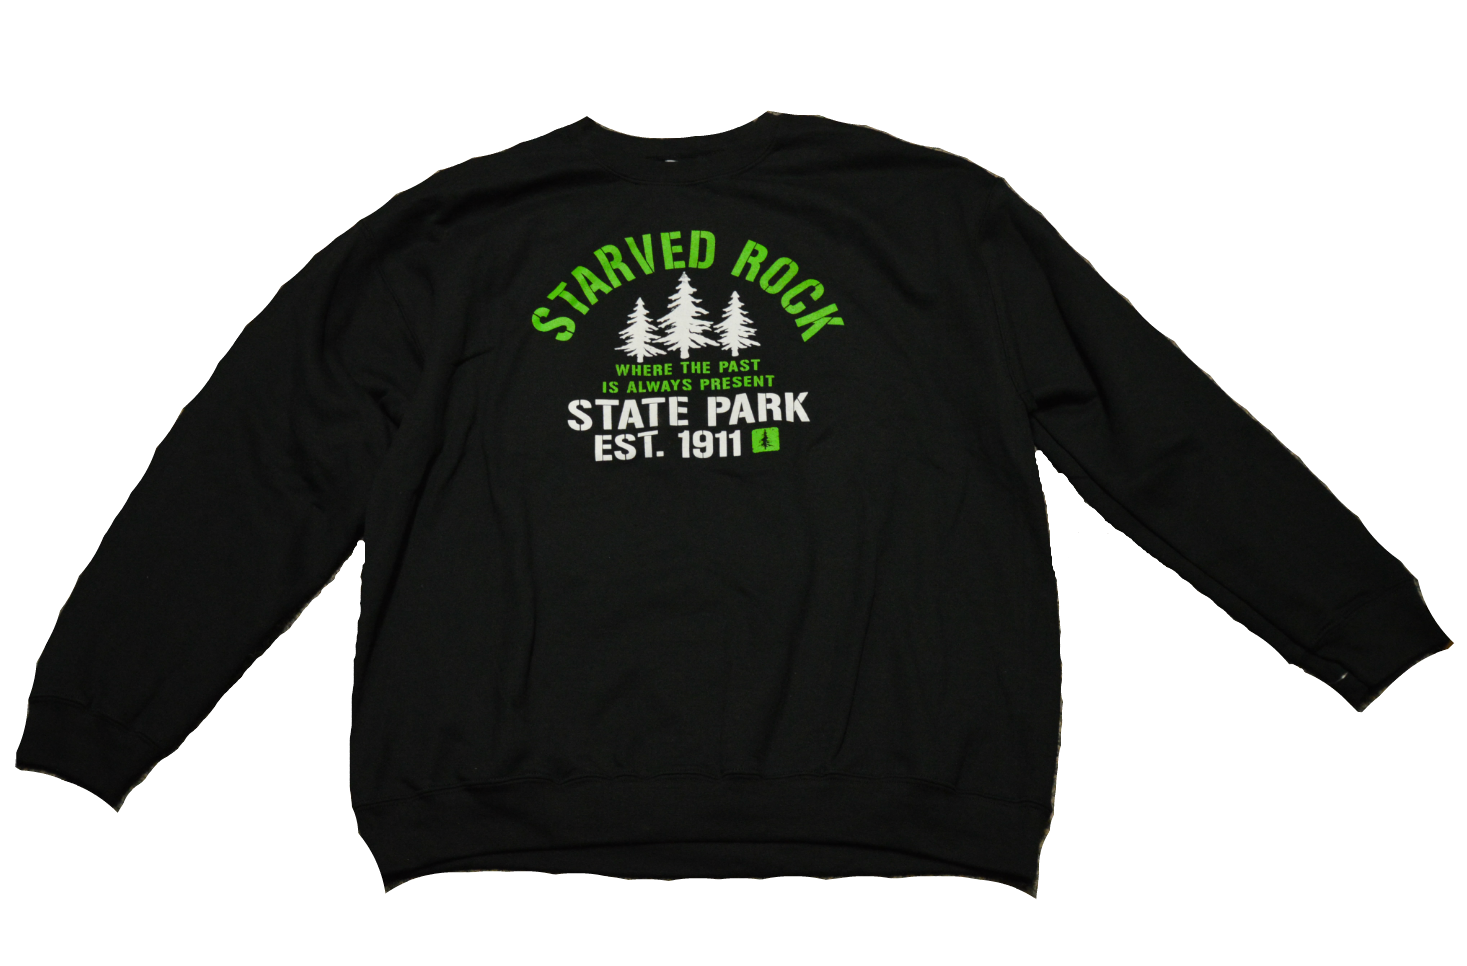 Starved Rock Crewneck Sweatshirt